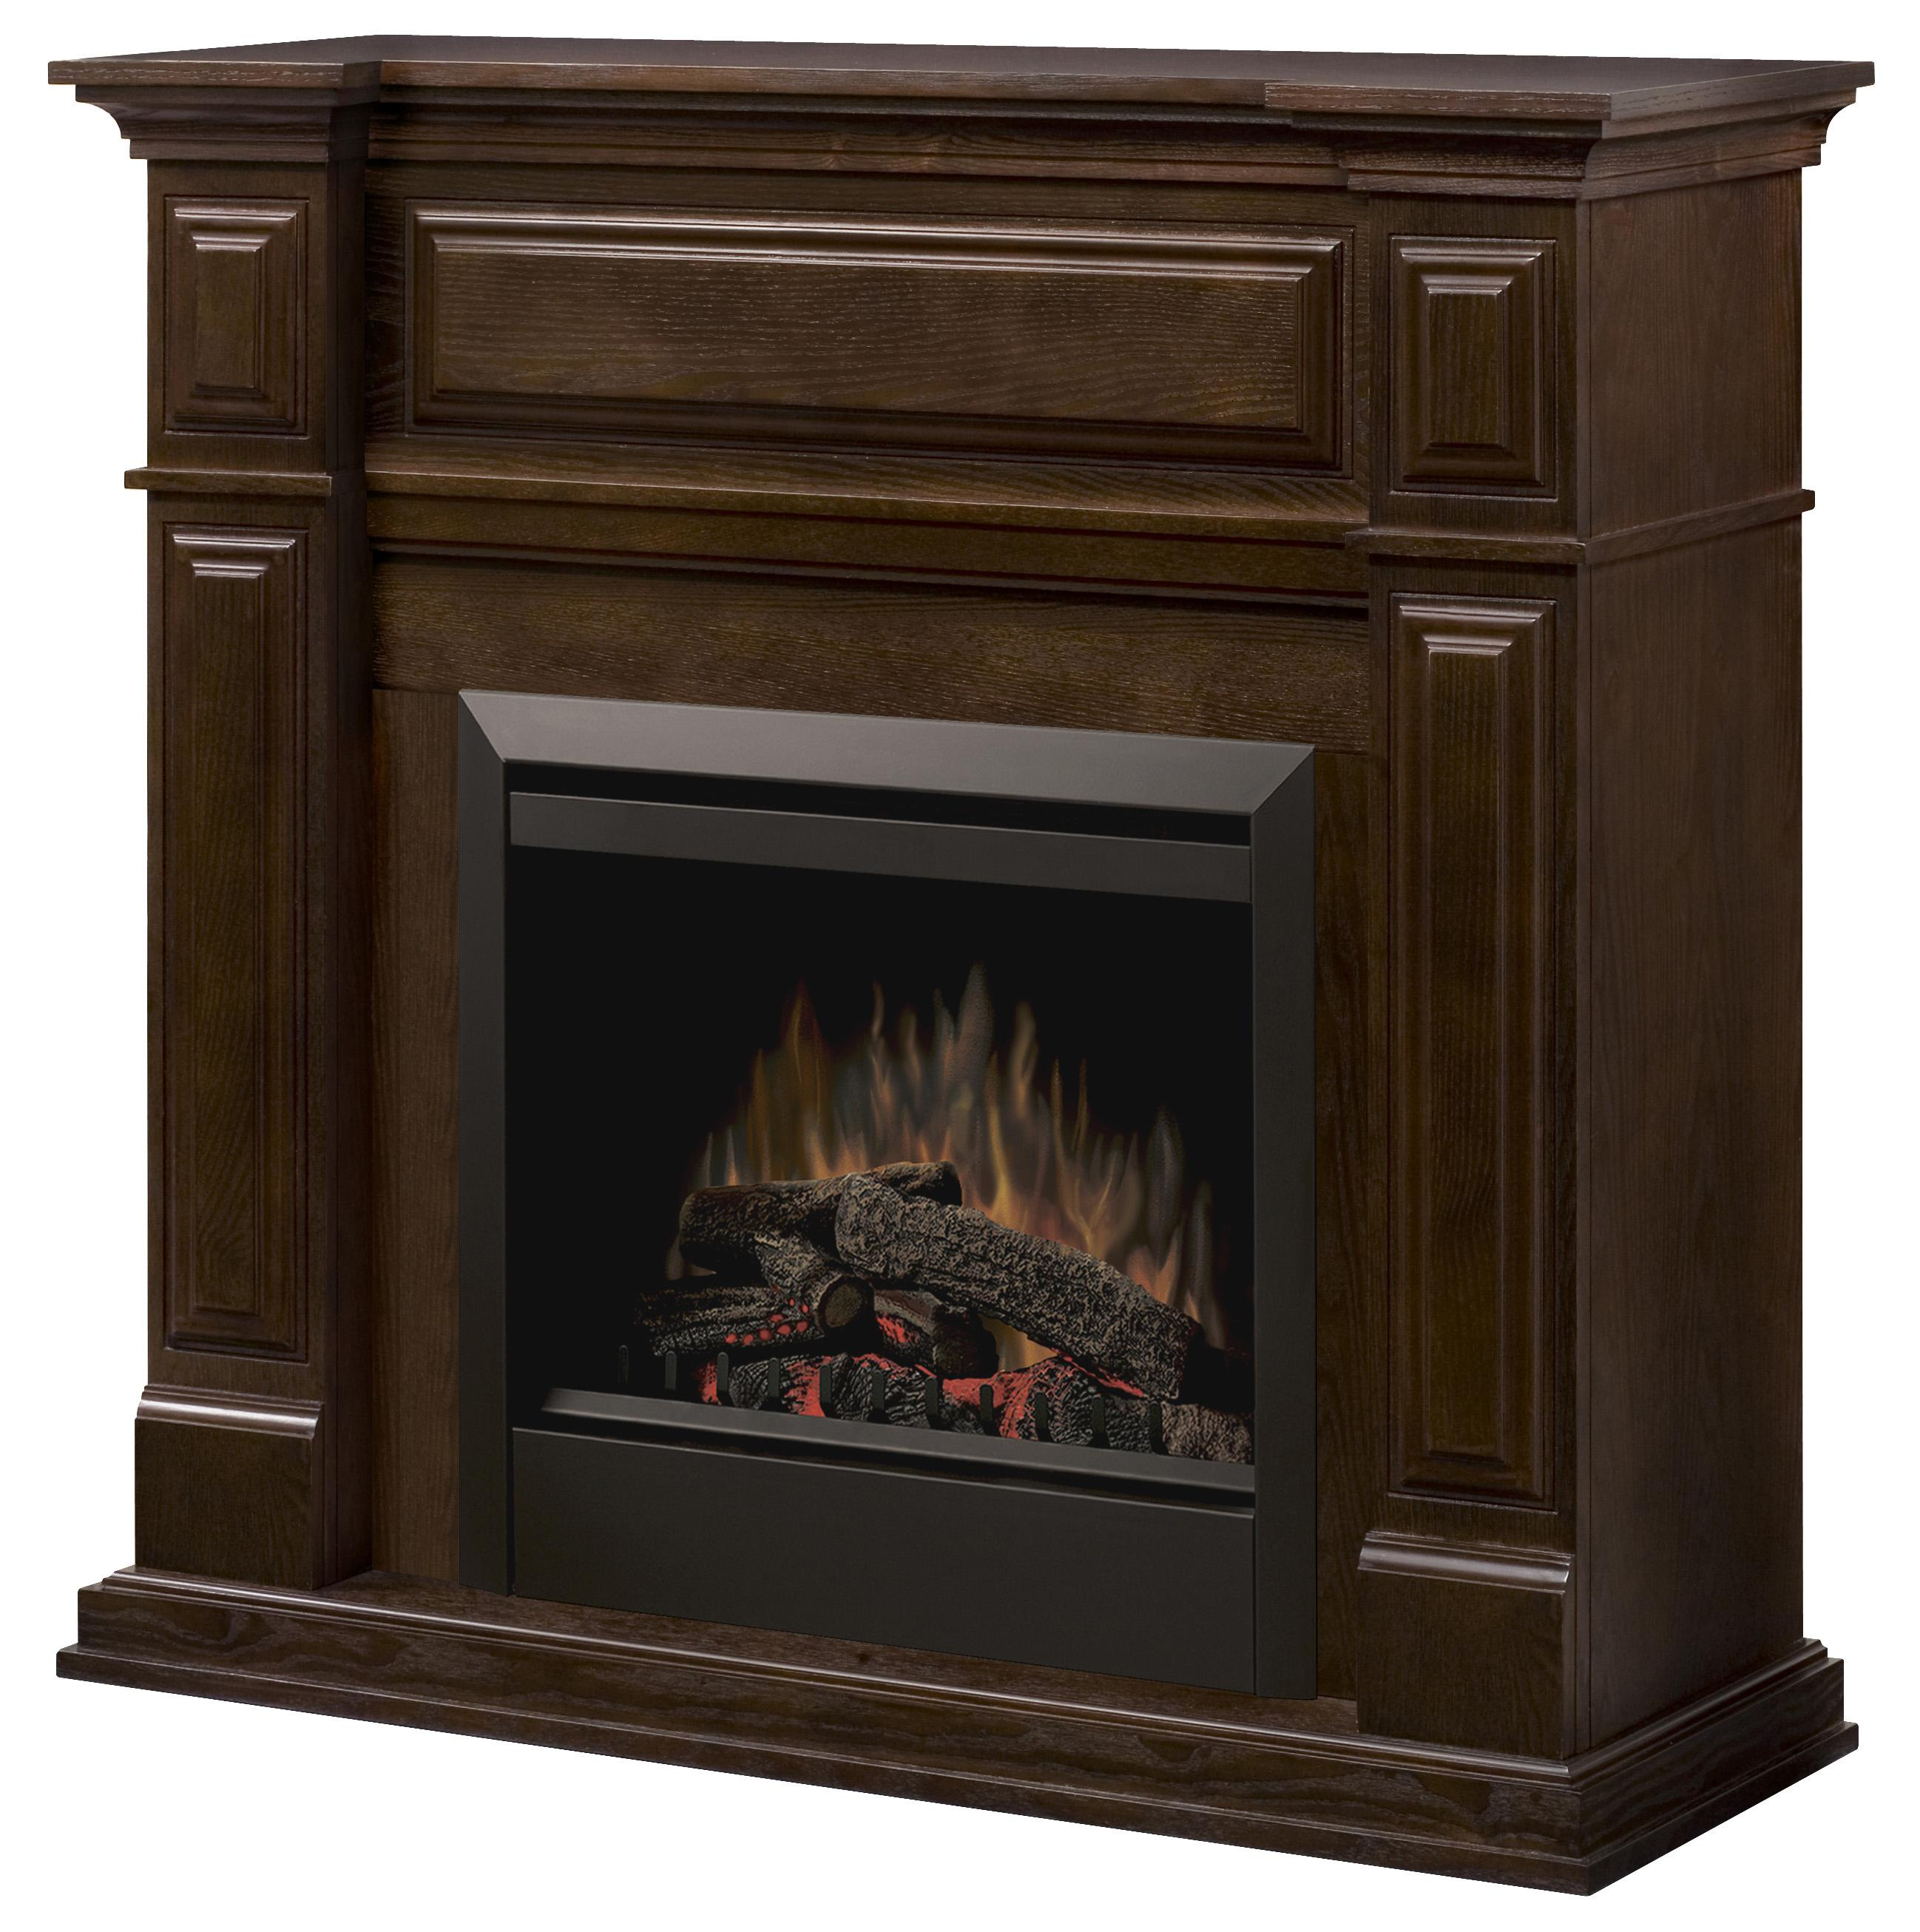 Flat-Wall Fireplaces Trenton Flat-Wall Fireplace by Dimplex at Jordan's Home Furnishings